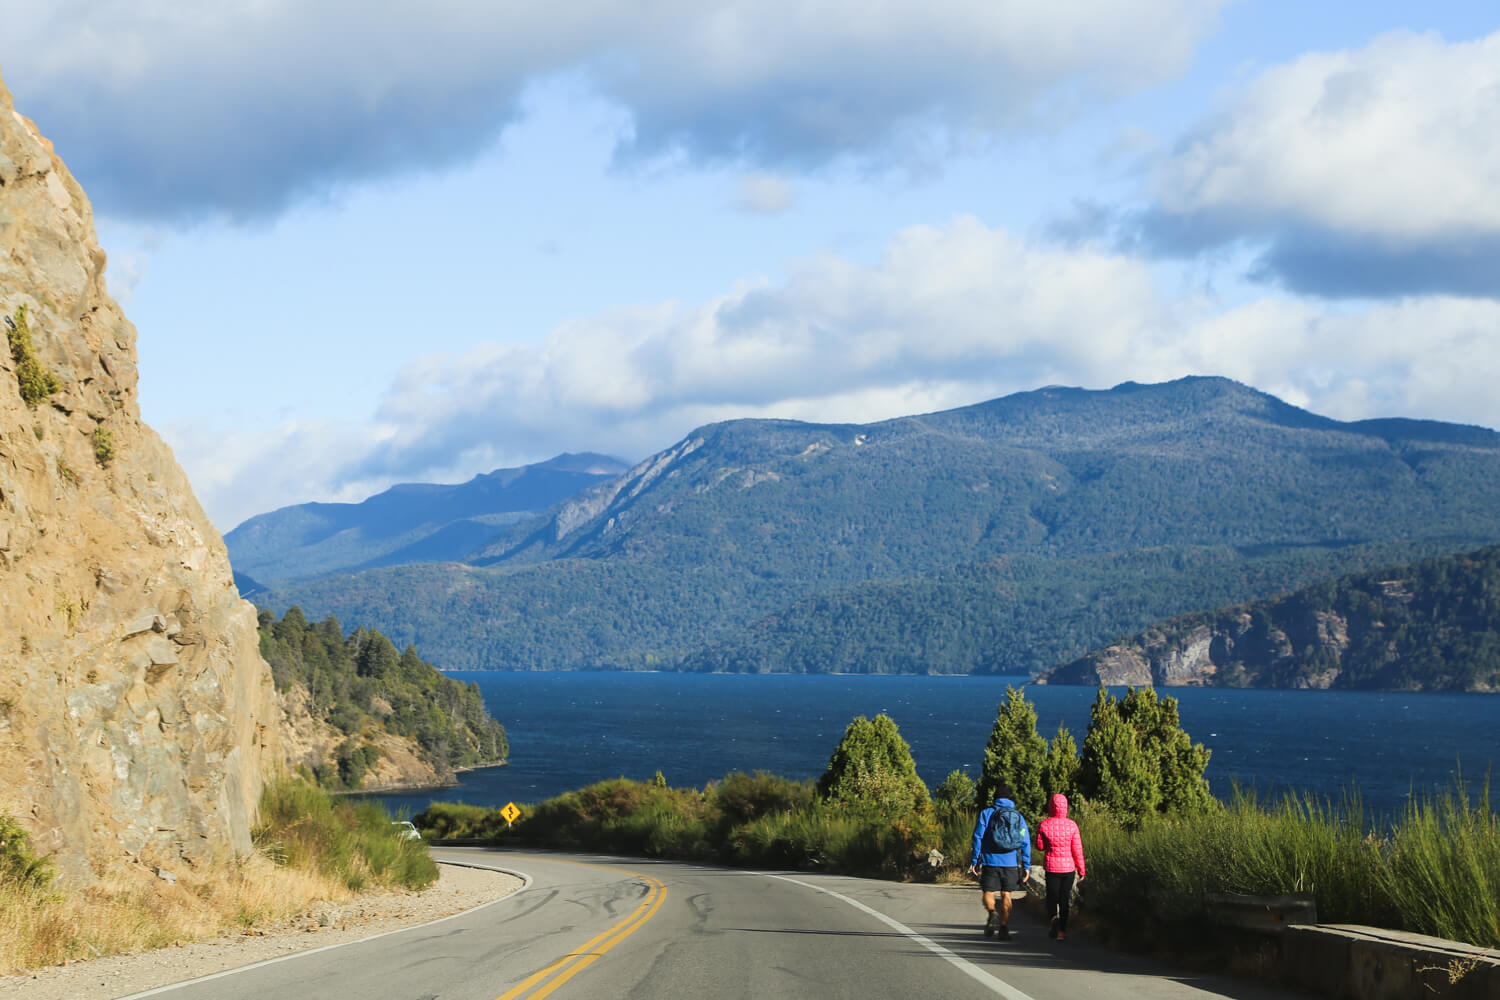 Two hikers walk alongside a highway by a lake with mountains in the background on the Ruta de los Siete Lagos drive in Patagonia